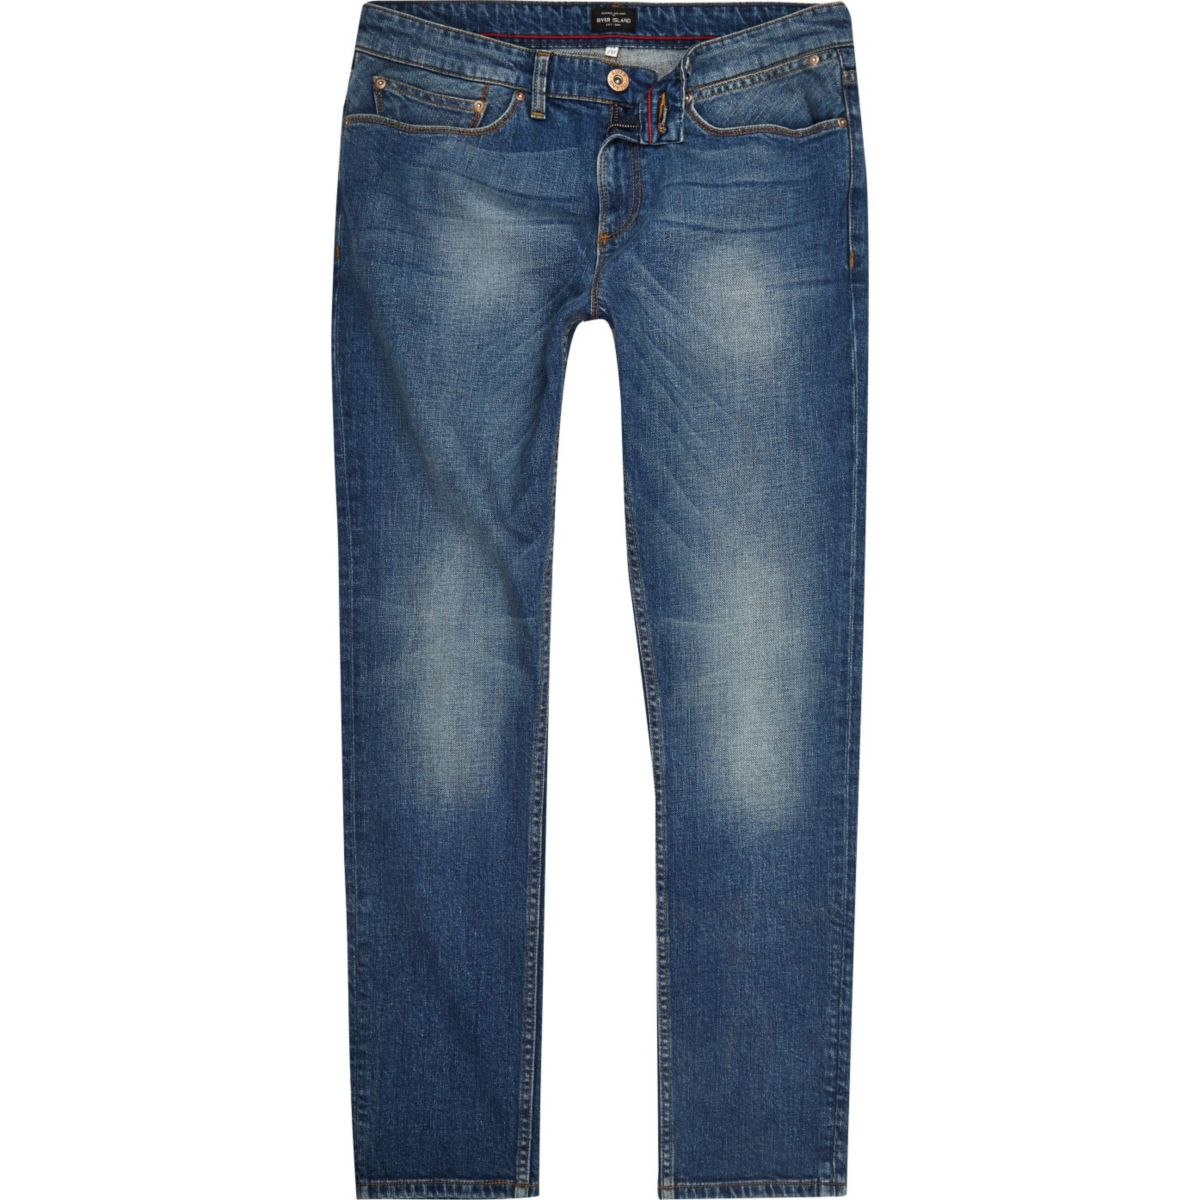 Discover men's jeans from ASOS. Hundreds of different jean styles, including biker jeans, straight leg jeans, acid wash jeans, bootcut and colored erlinelomantkgs831.ga today at ASOS.